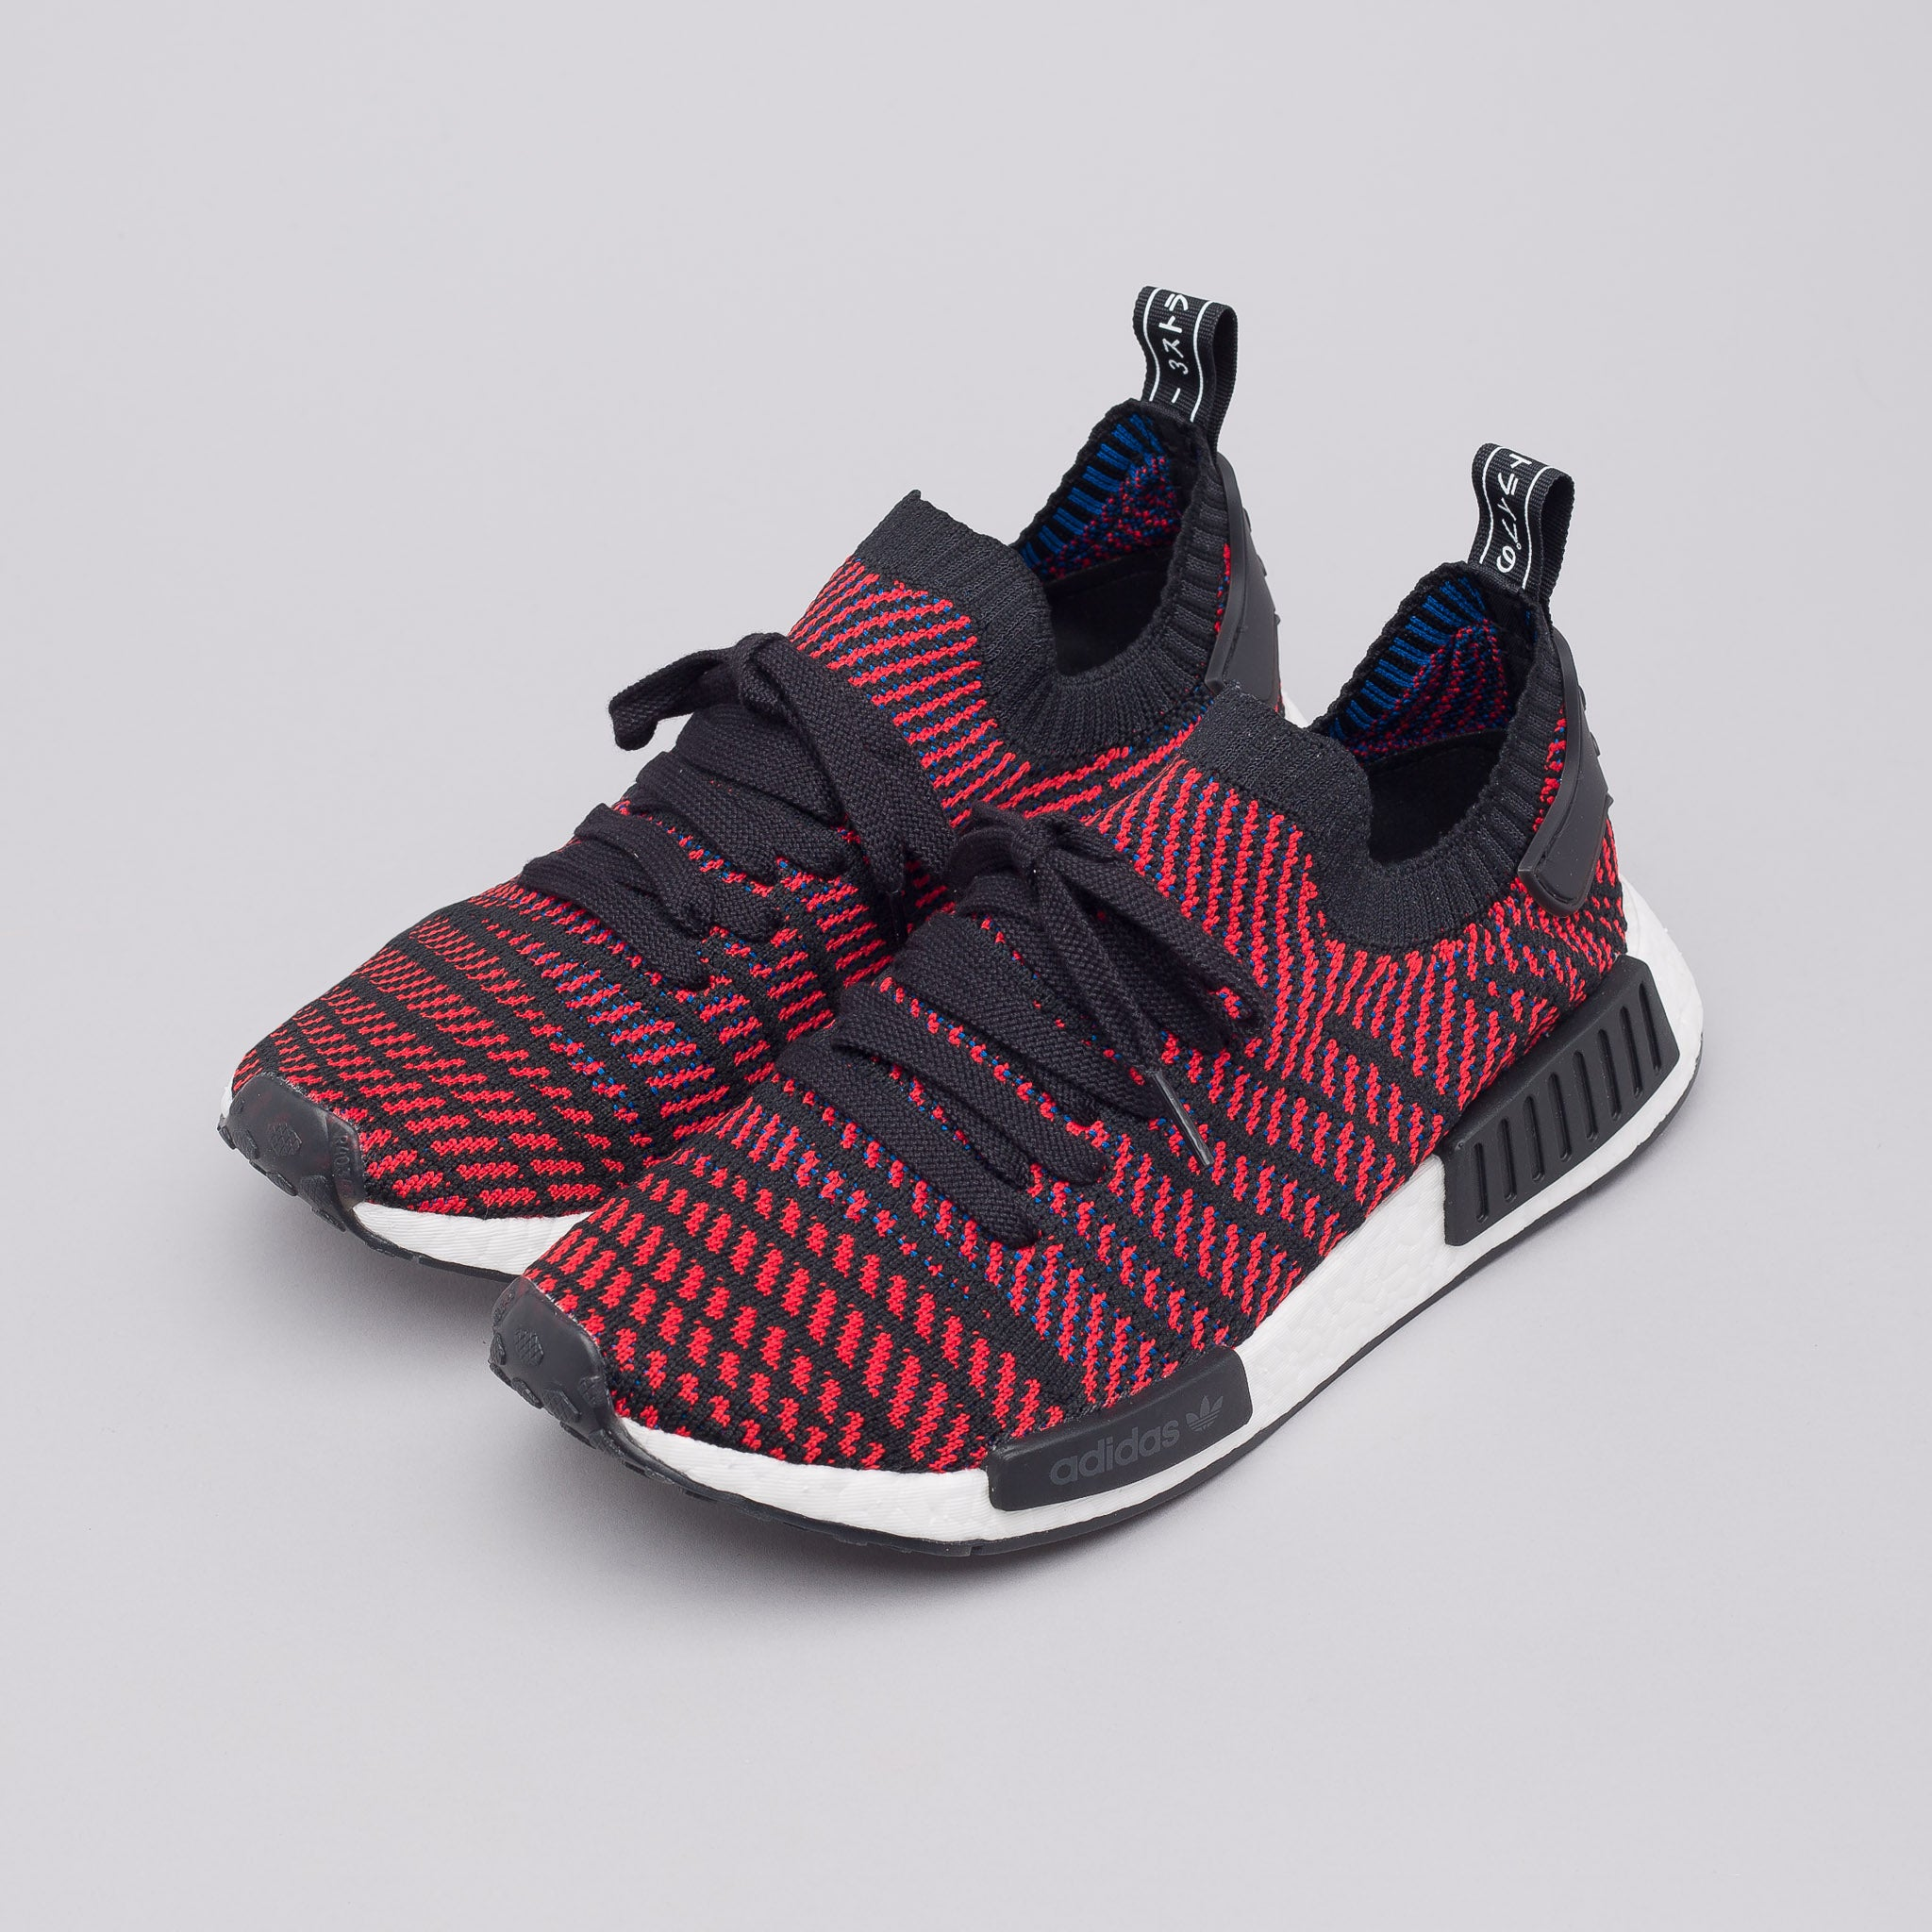 NMD R1 PK OG Black Red Blue Mate Sneaker Boutique